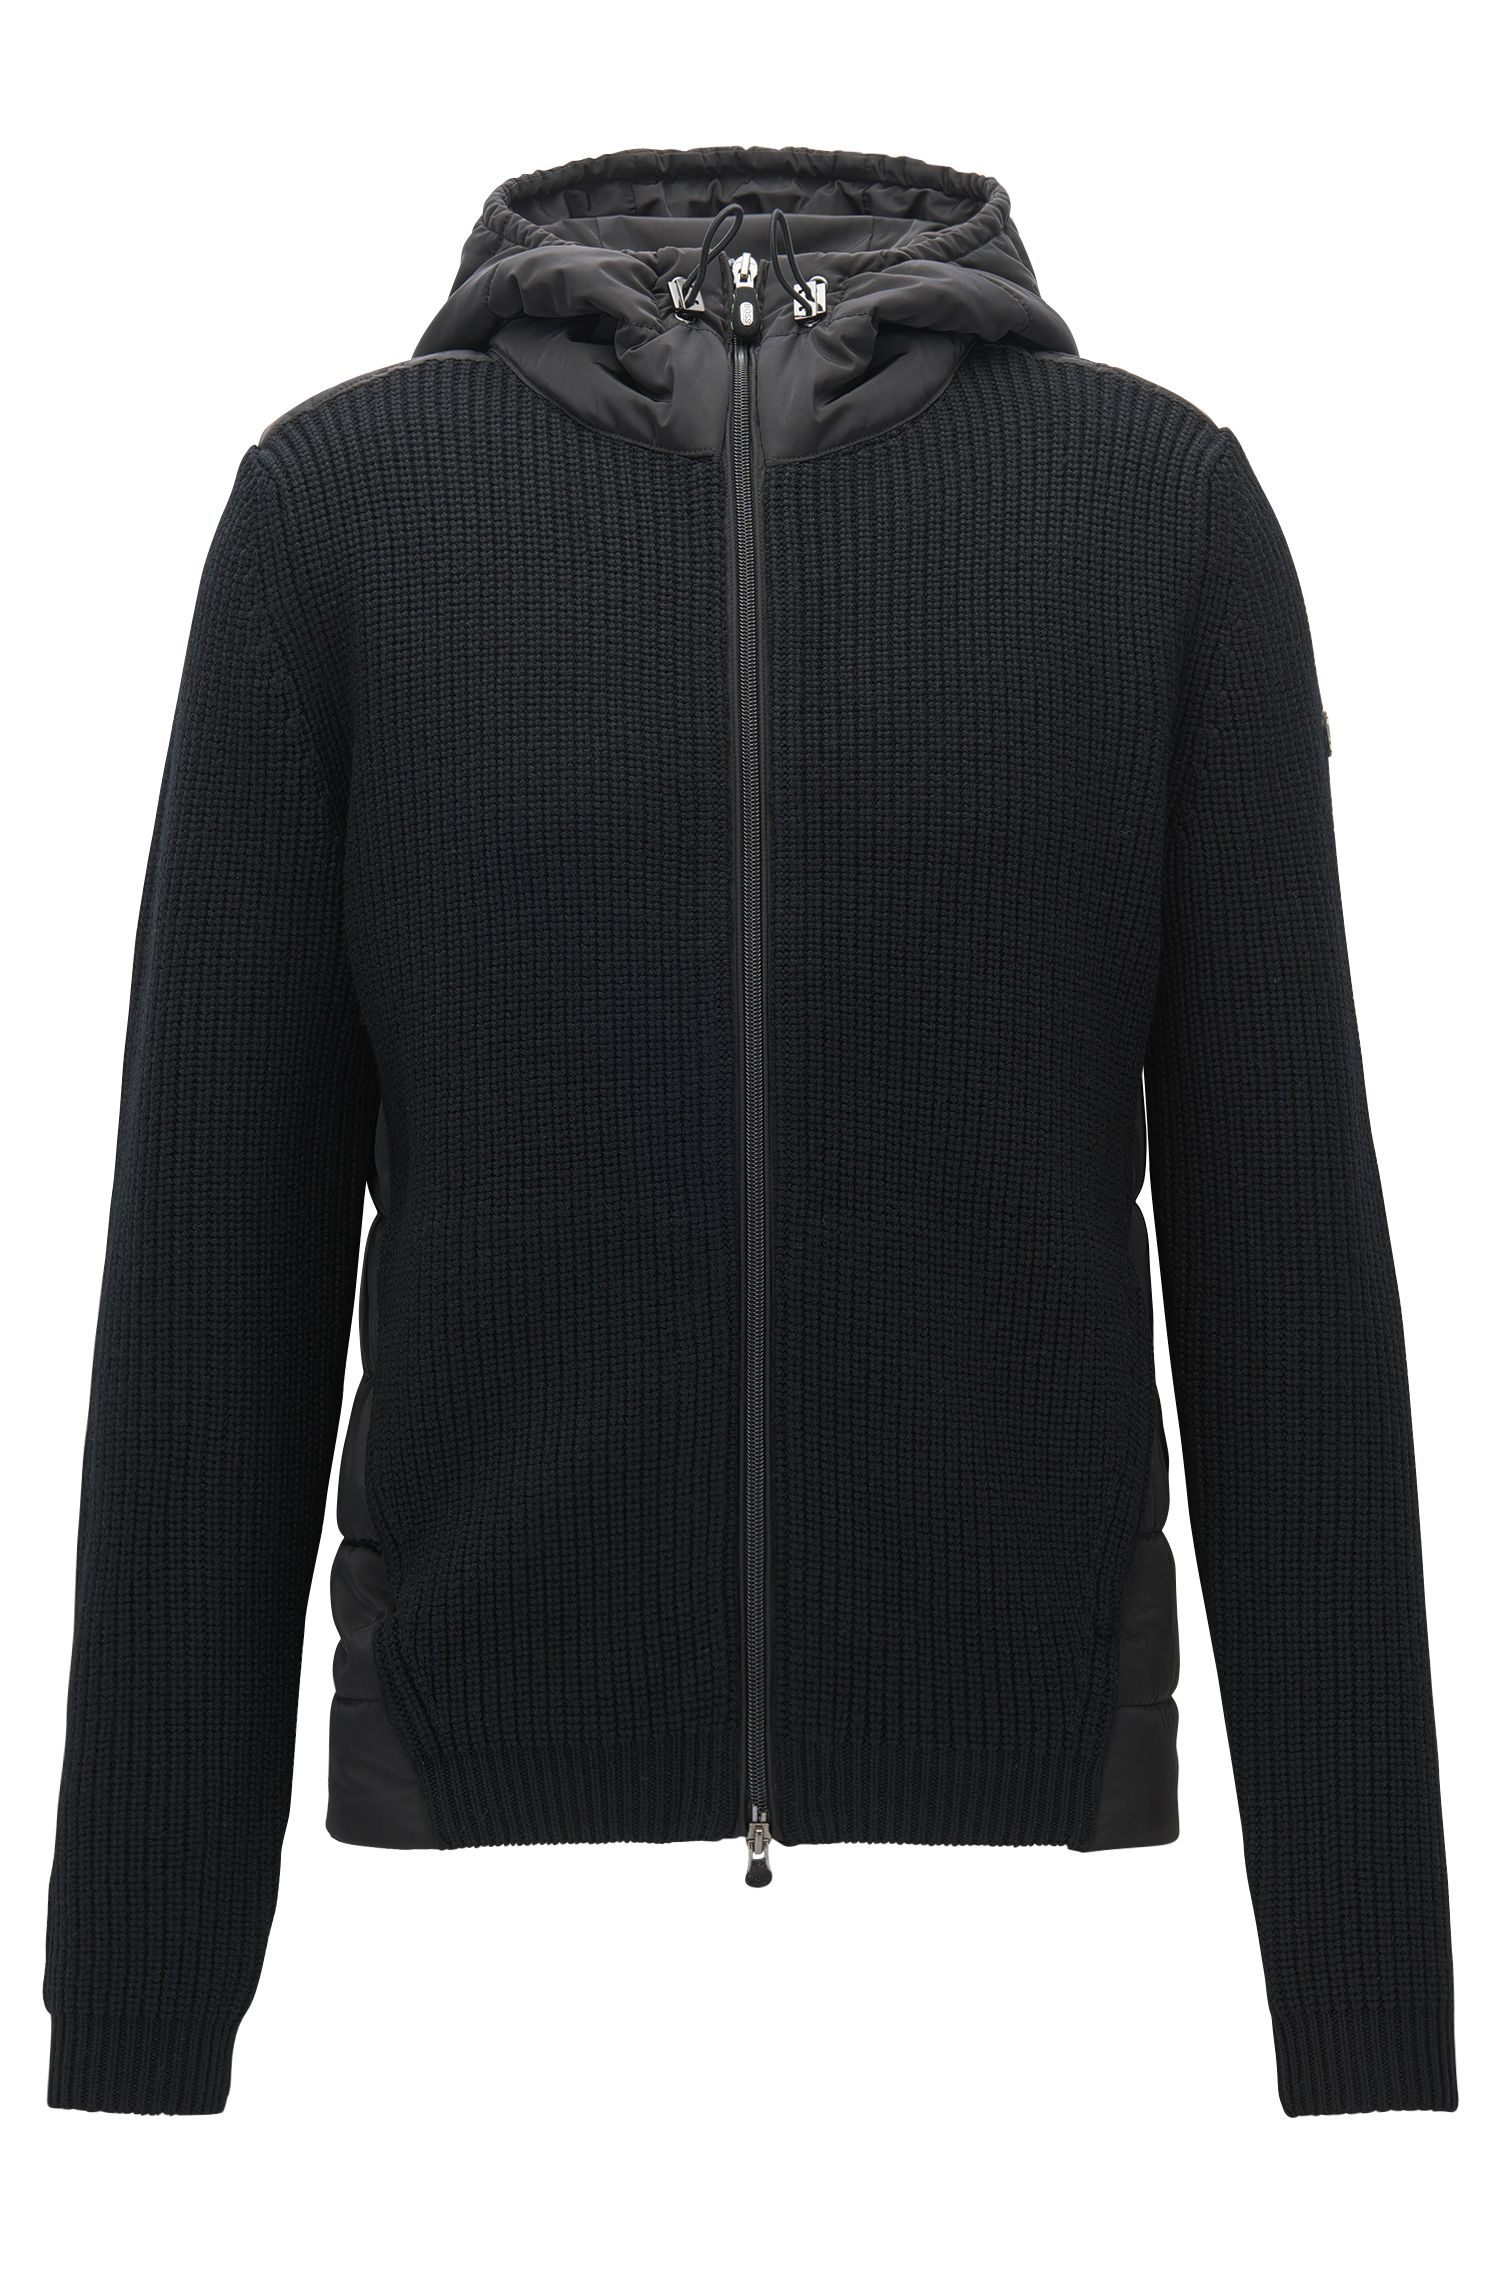 Regular-fit hooded jacket in a knitted and padded mix